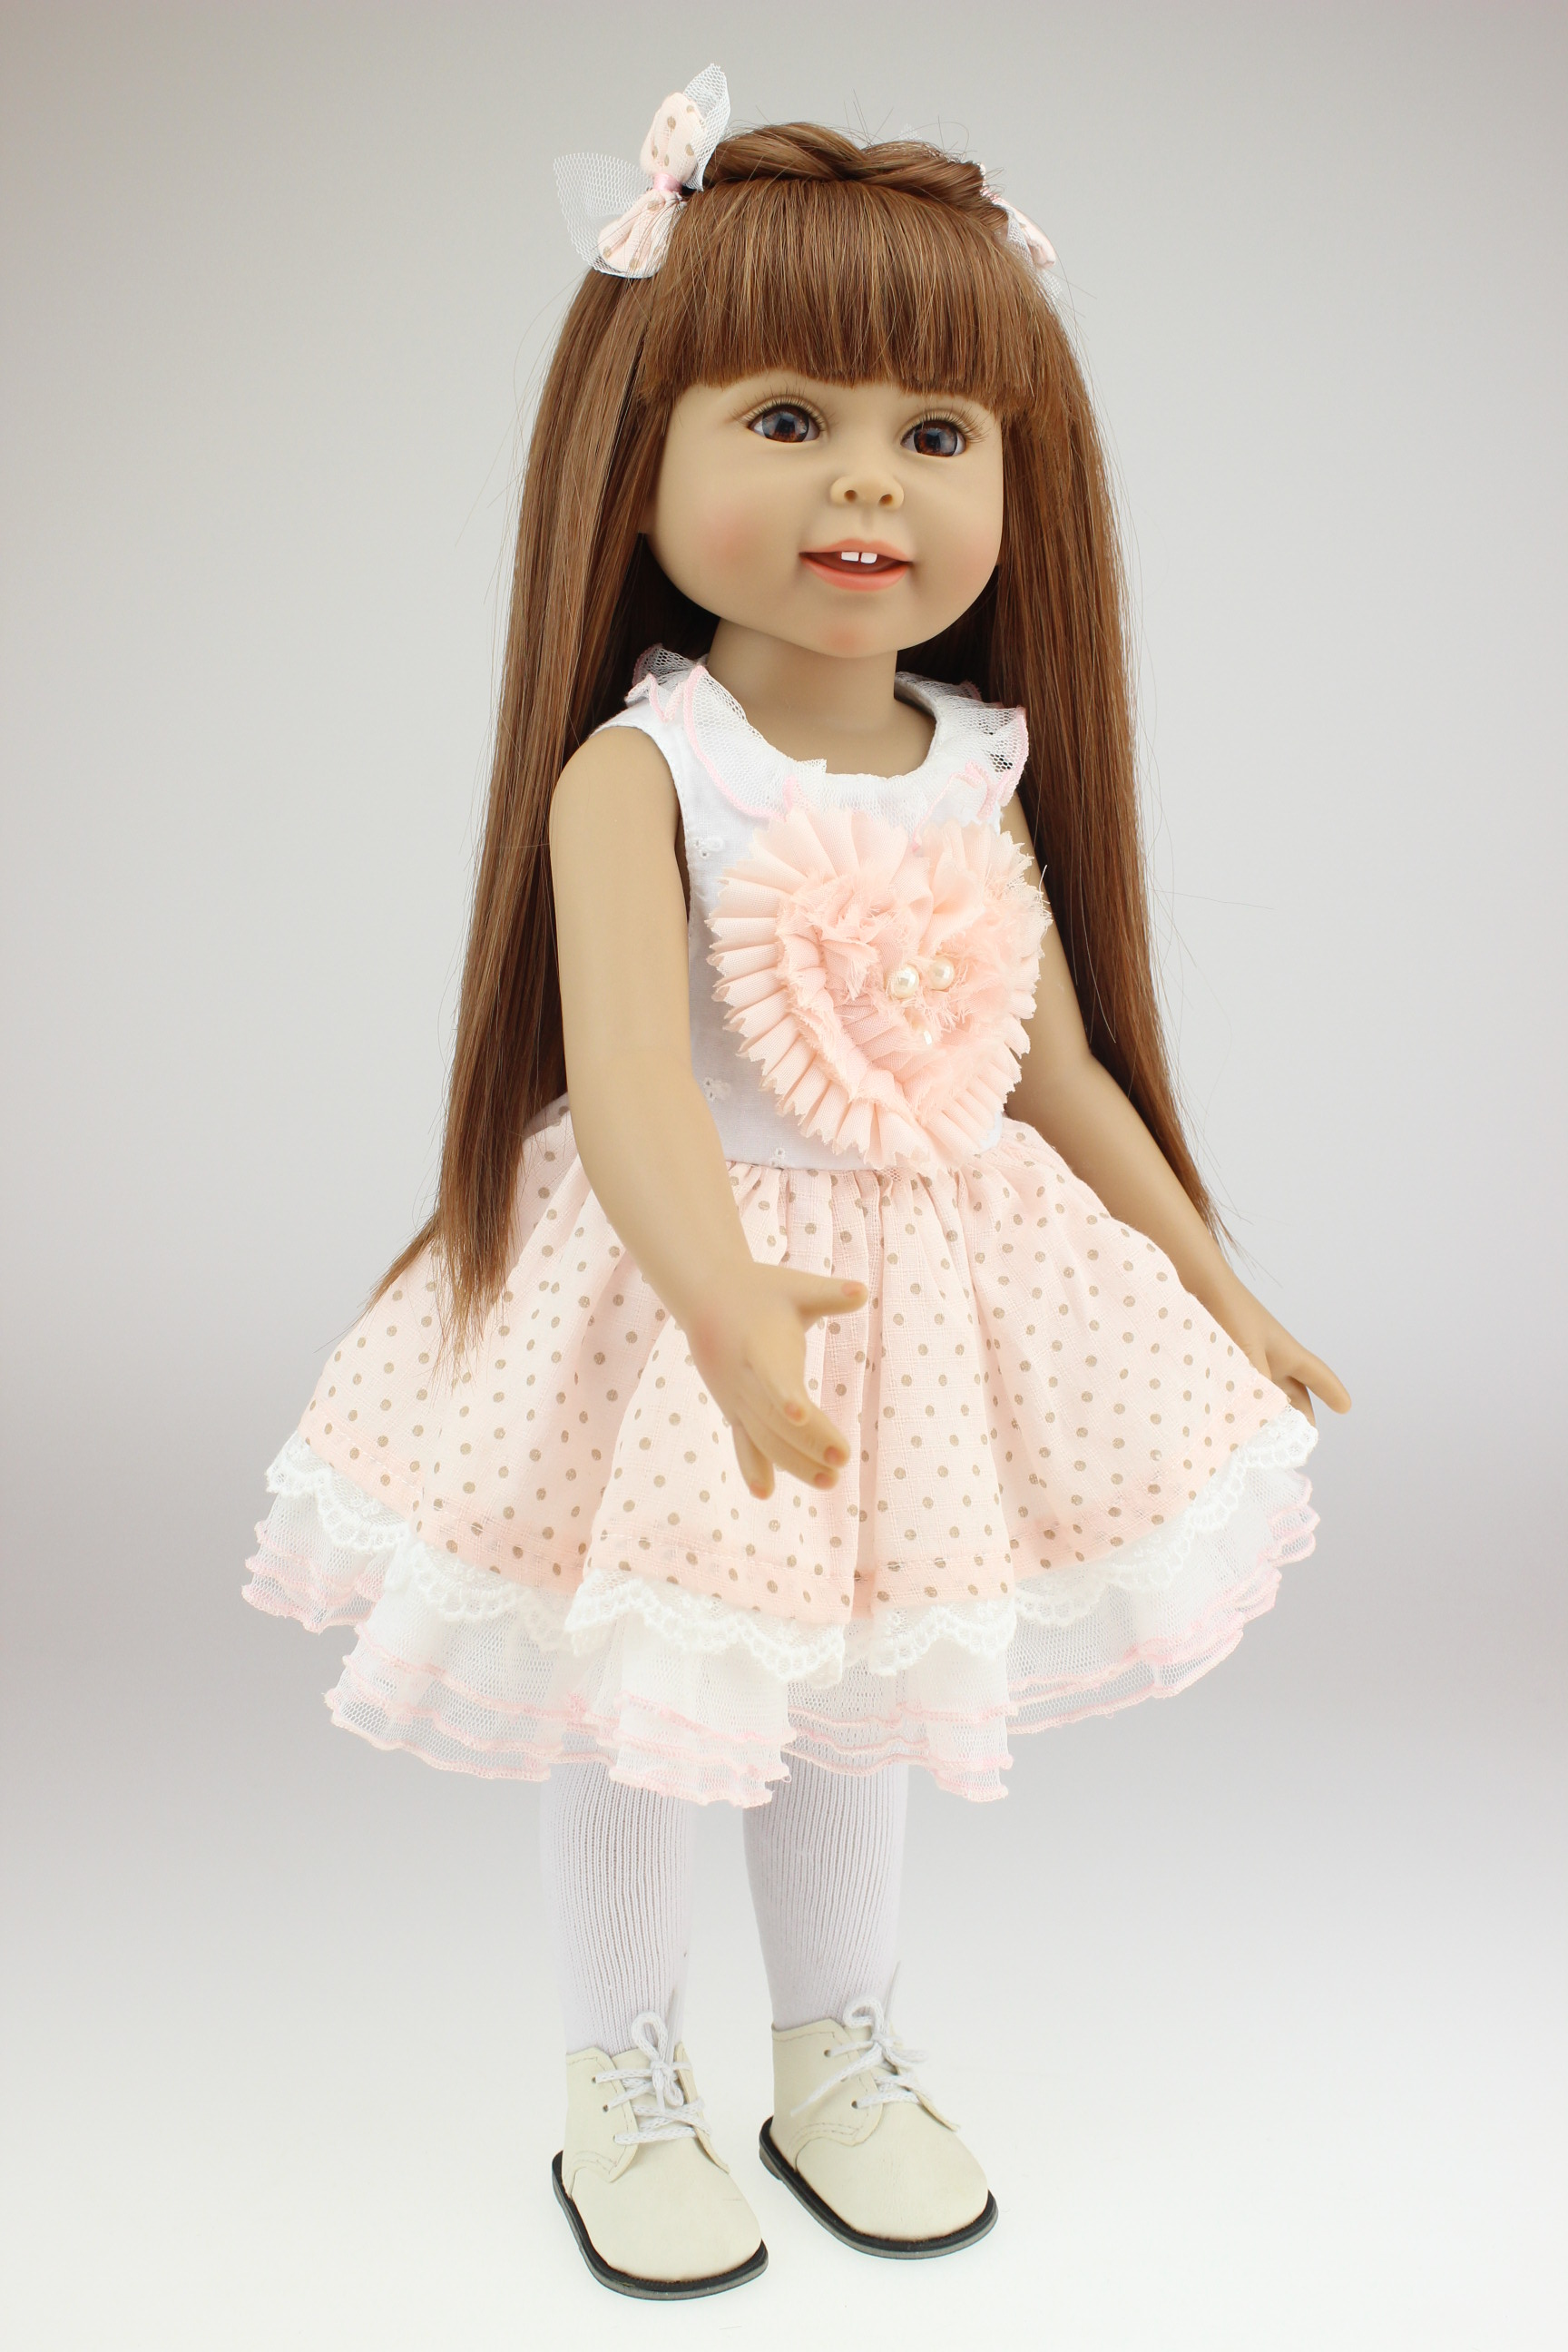 45CM AMERICAN GIRL Brown Long Hair Pink Cute Dress Reborn Handmade Baby Dolls Full Newborn Baby Doll Toys Girls Toys cnc adjustable motorcycle billet foldable pivot extendable clutch page 6